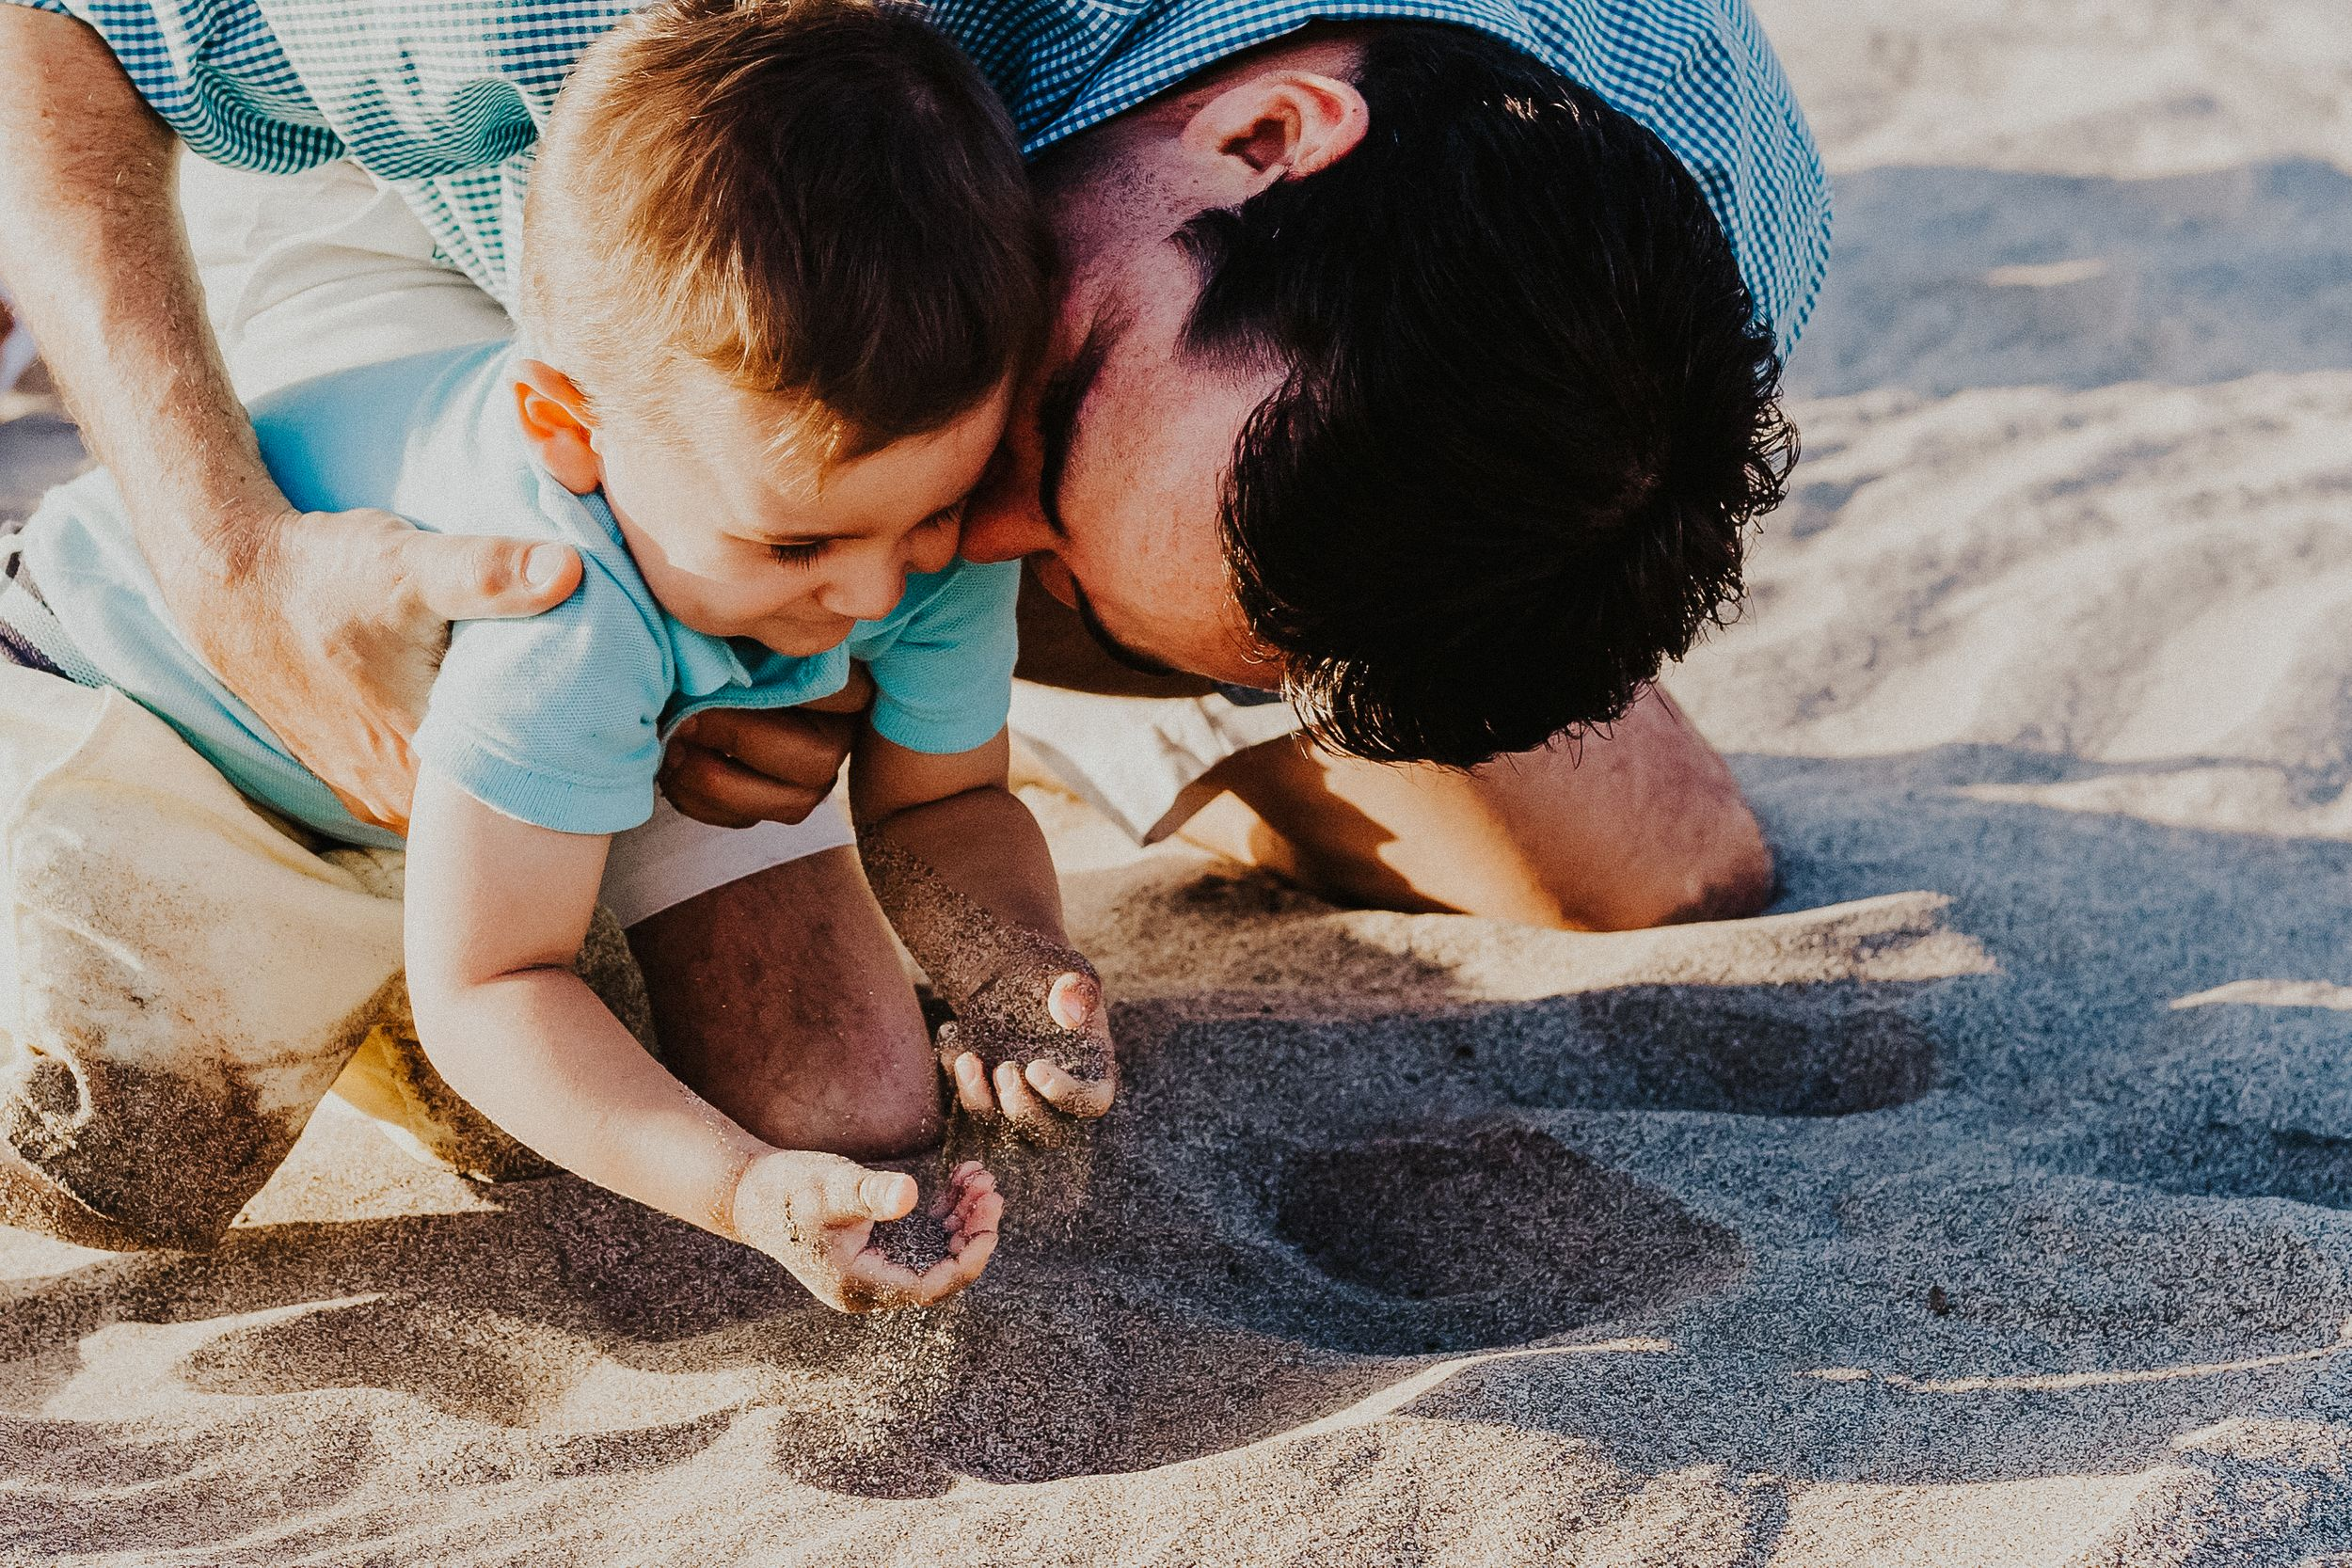 Dad kisses son on the cheek while he is playing in the sand